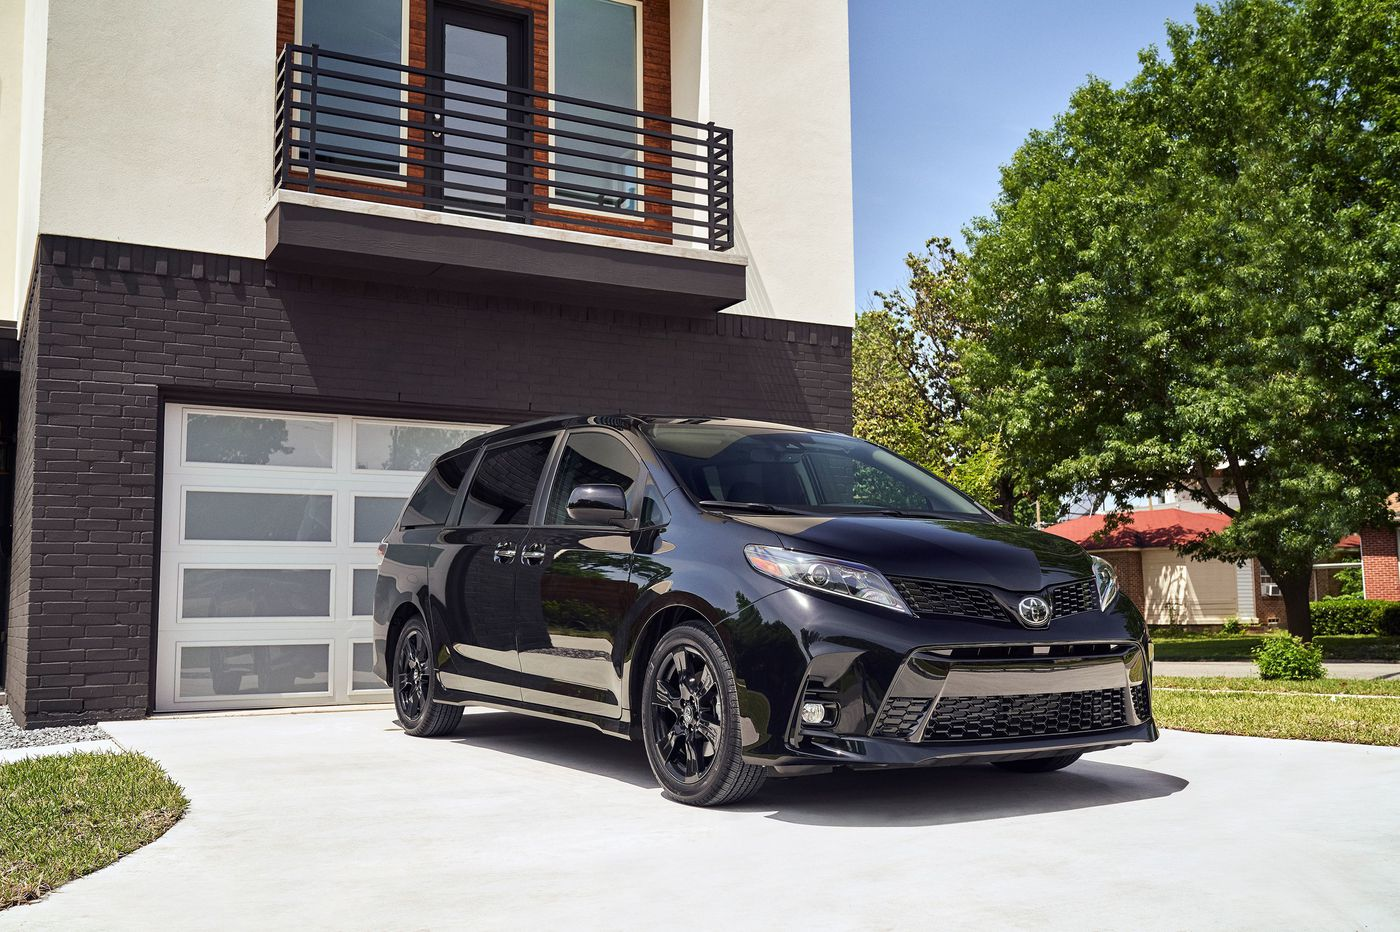 Toyota Sienna AWD: It's all the SUV most of us need